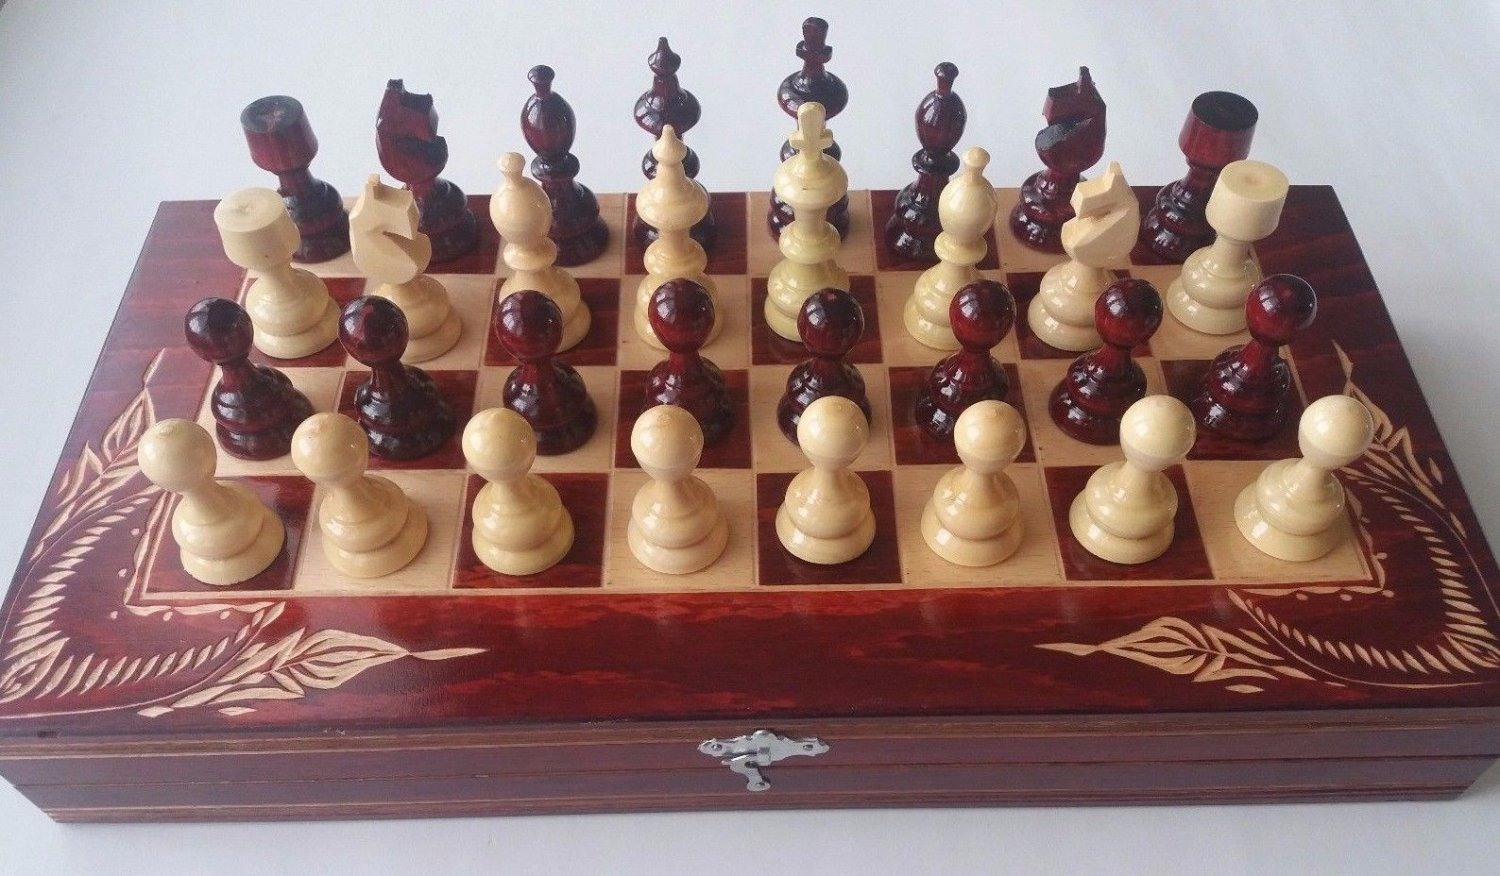 New red carved beech wood chessboard box hazel wood chess piece board game gift